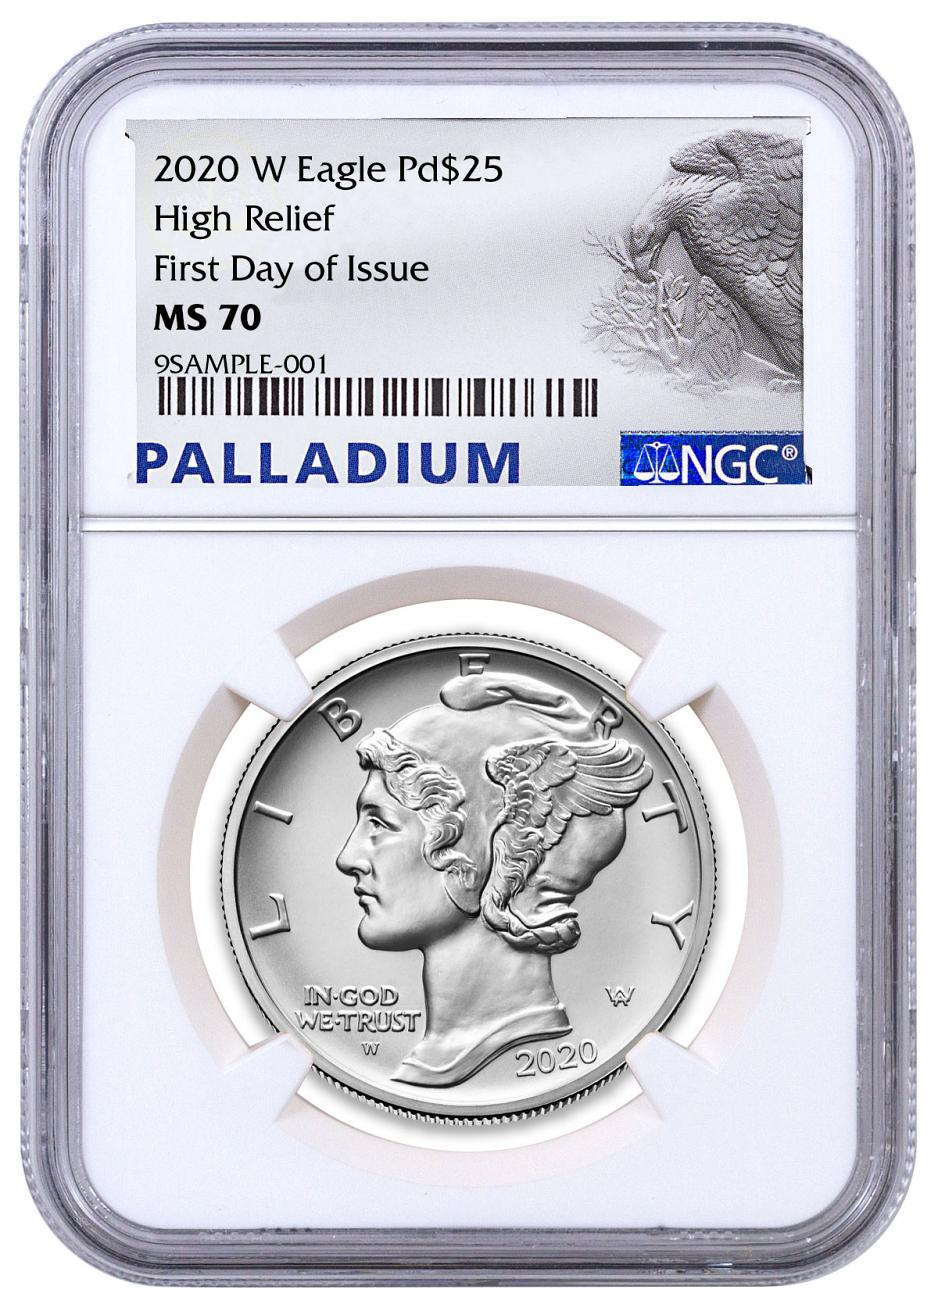 2020-W 1 oz High Relief Palladium Eagle Burnished $25 Coin NGC MS70 FDI Palladium Eagle Label